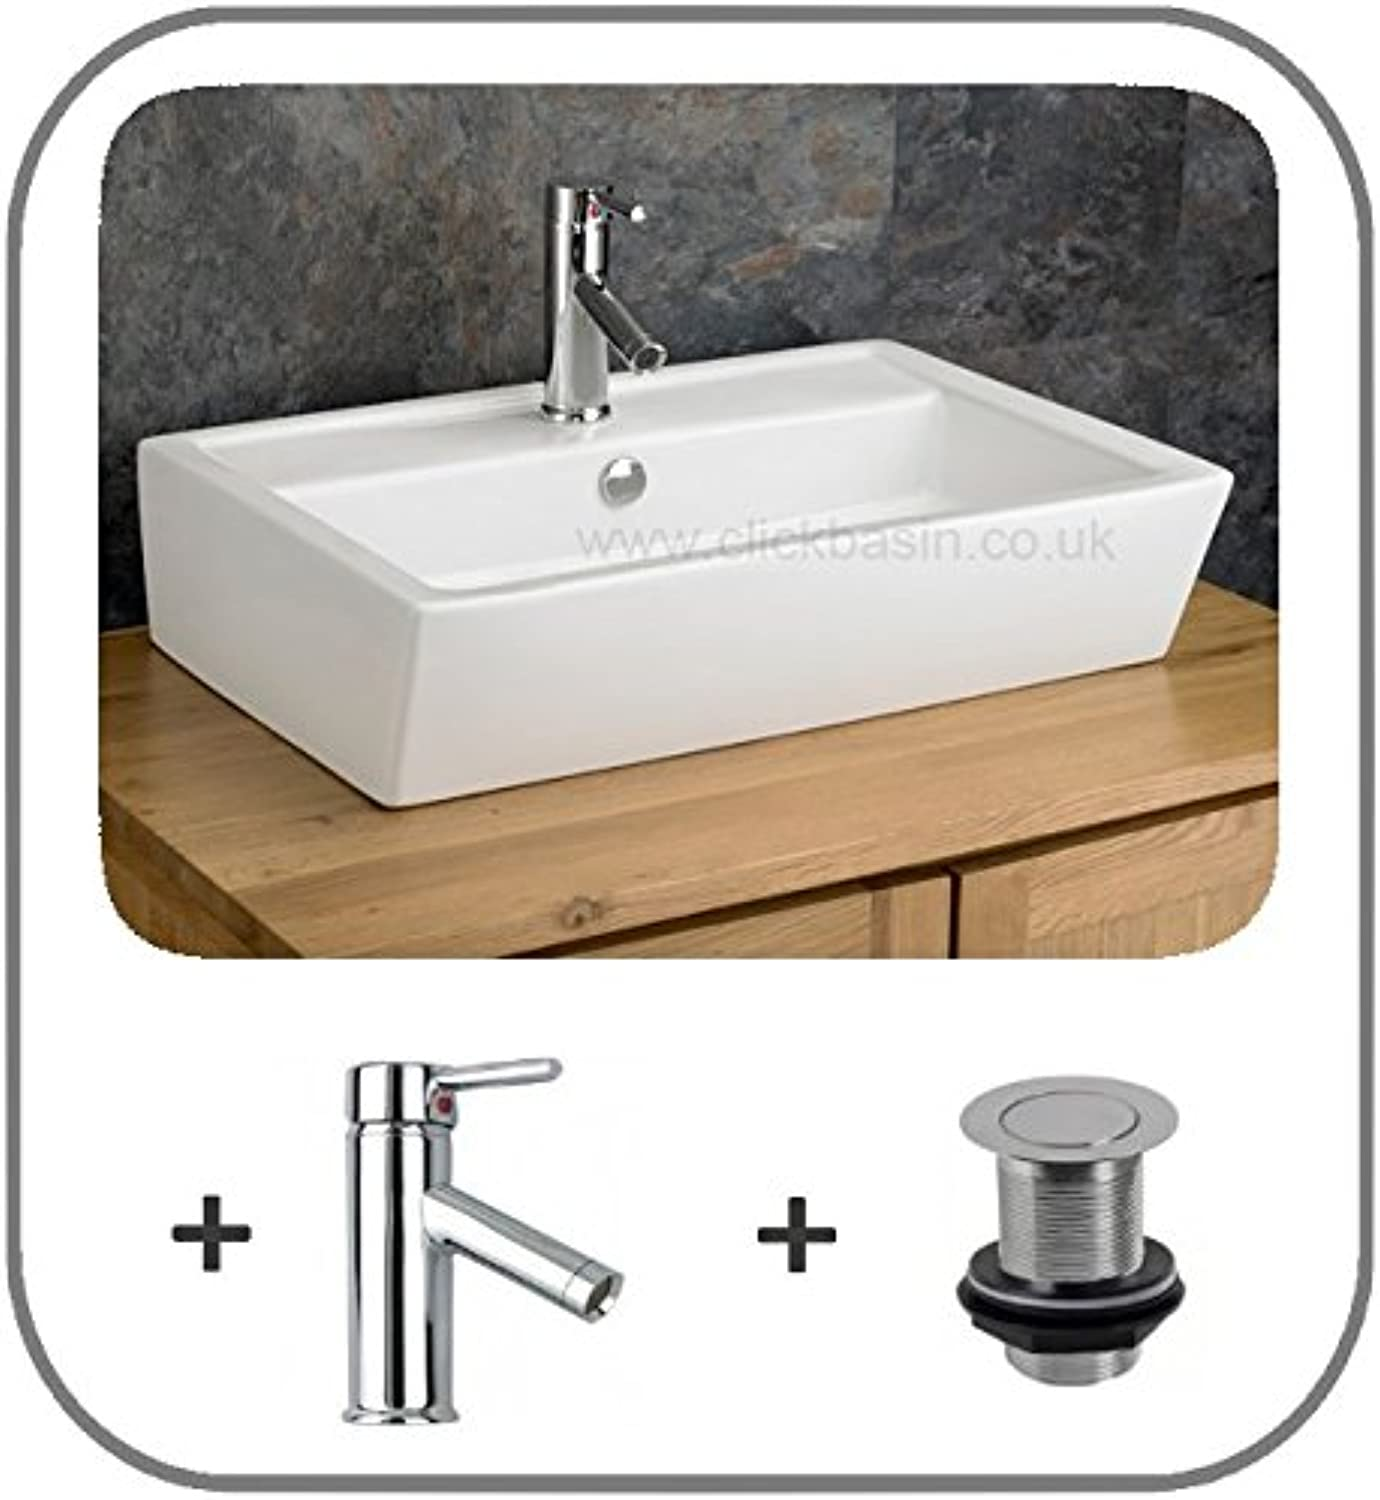 Clickbasin Cremona 63cm X 43.5cm Large Rectangular Basin With Solo Mixer Tap And Push Click Waste